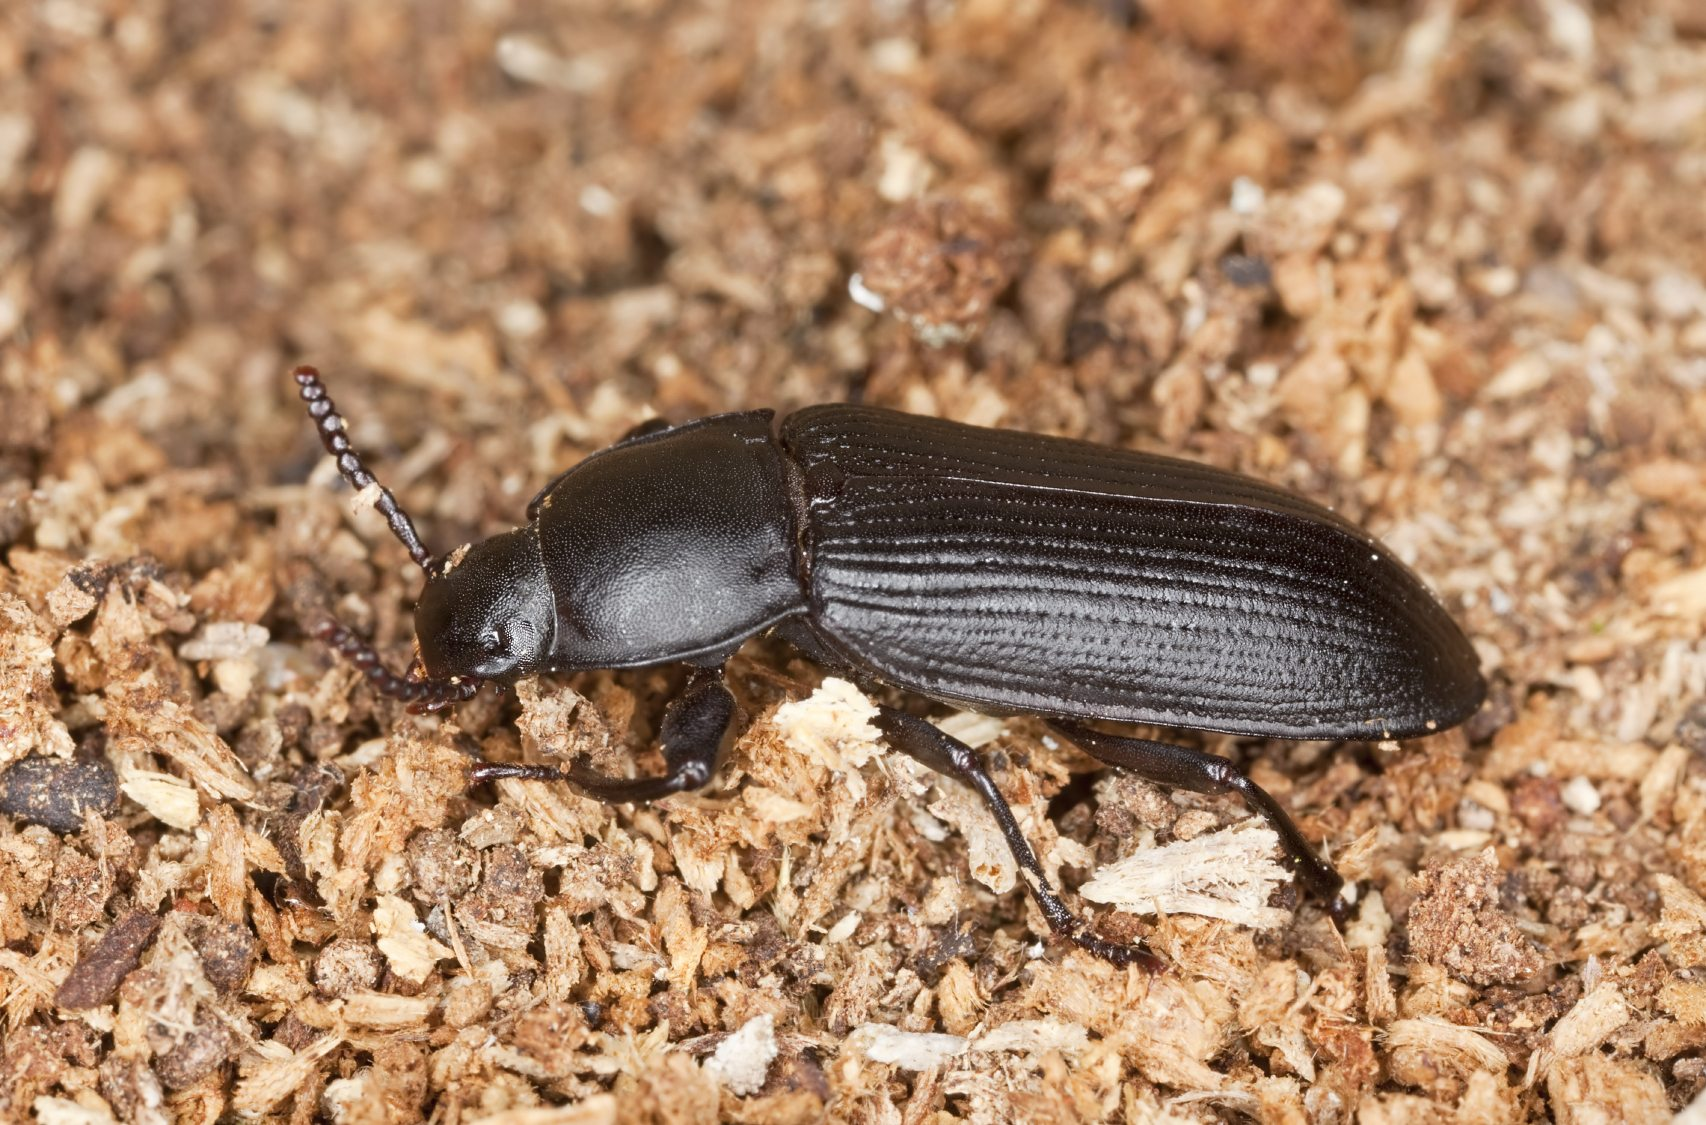 Tierische Schädlinge In Der Küche Identification Of Darkling Beetles Learn About Darkling